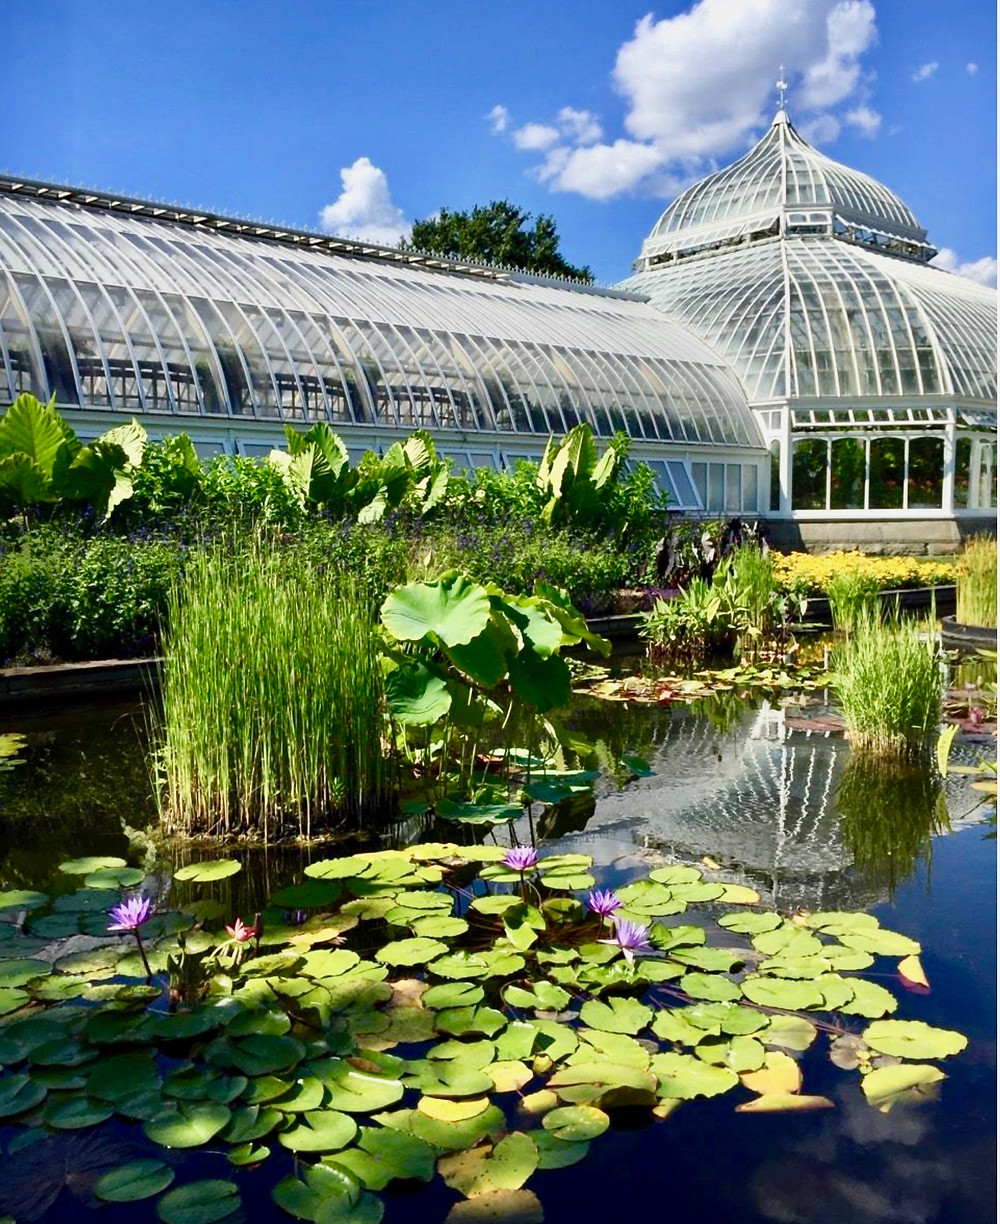 the Aquatic Garden at Phipps